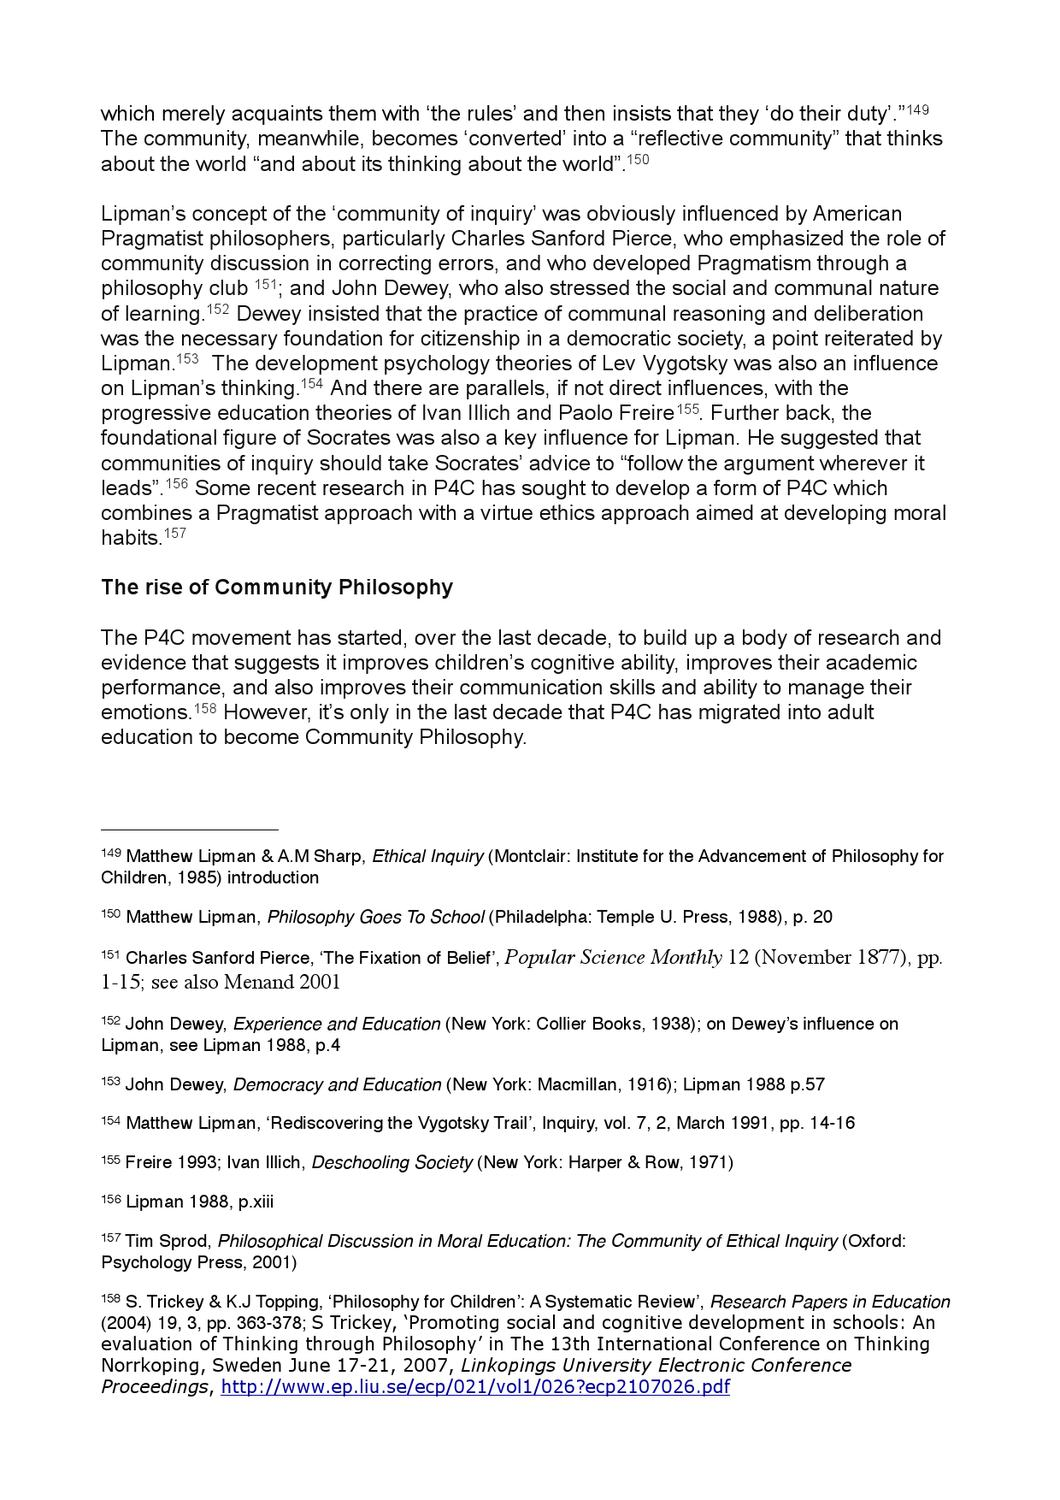 Philosophical Discussion in Moral Education: The Community of Ethical Inquiry